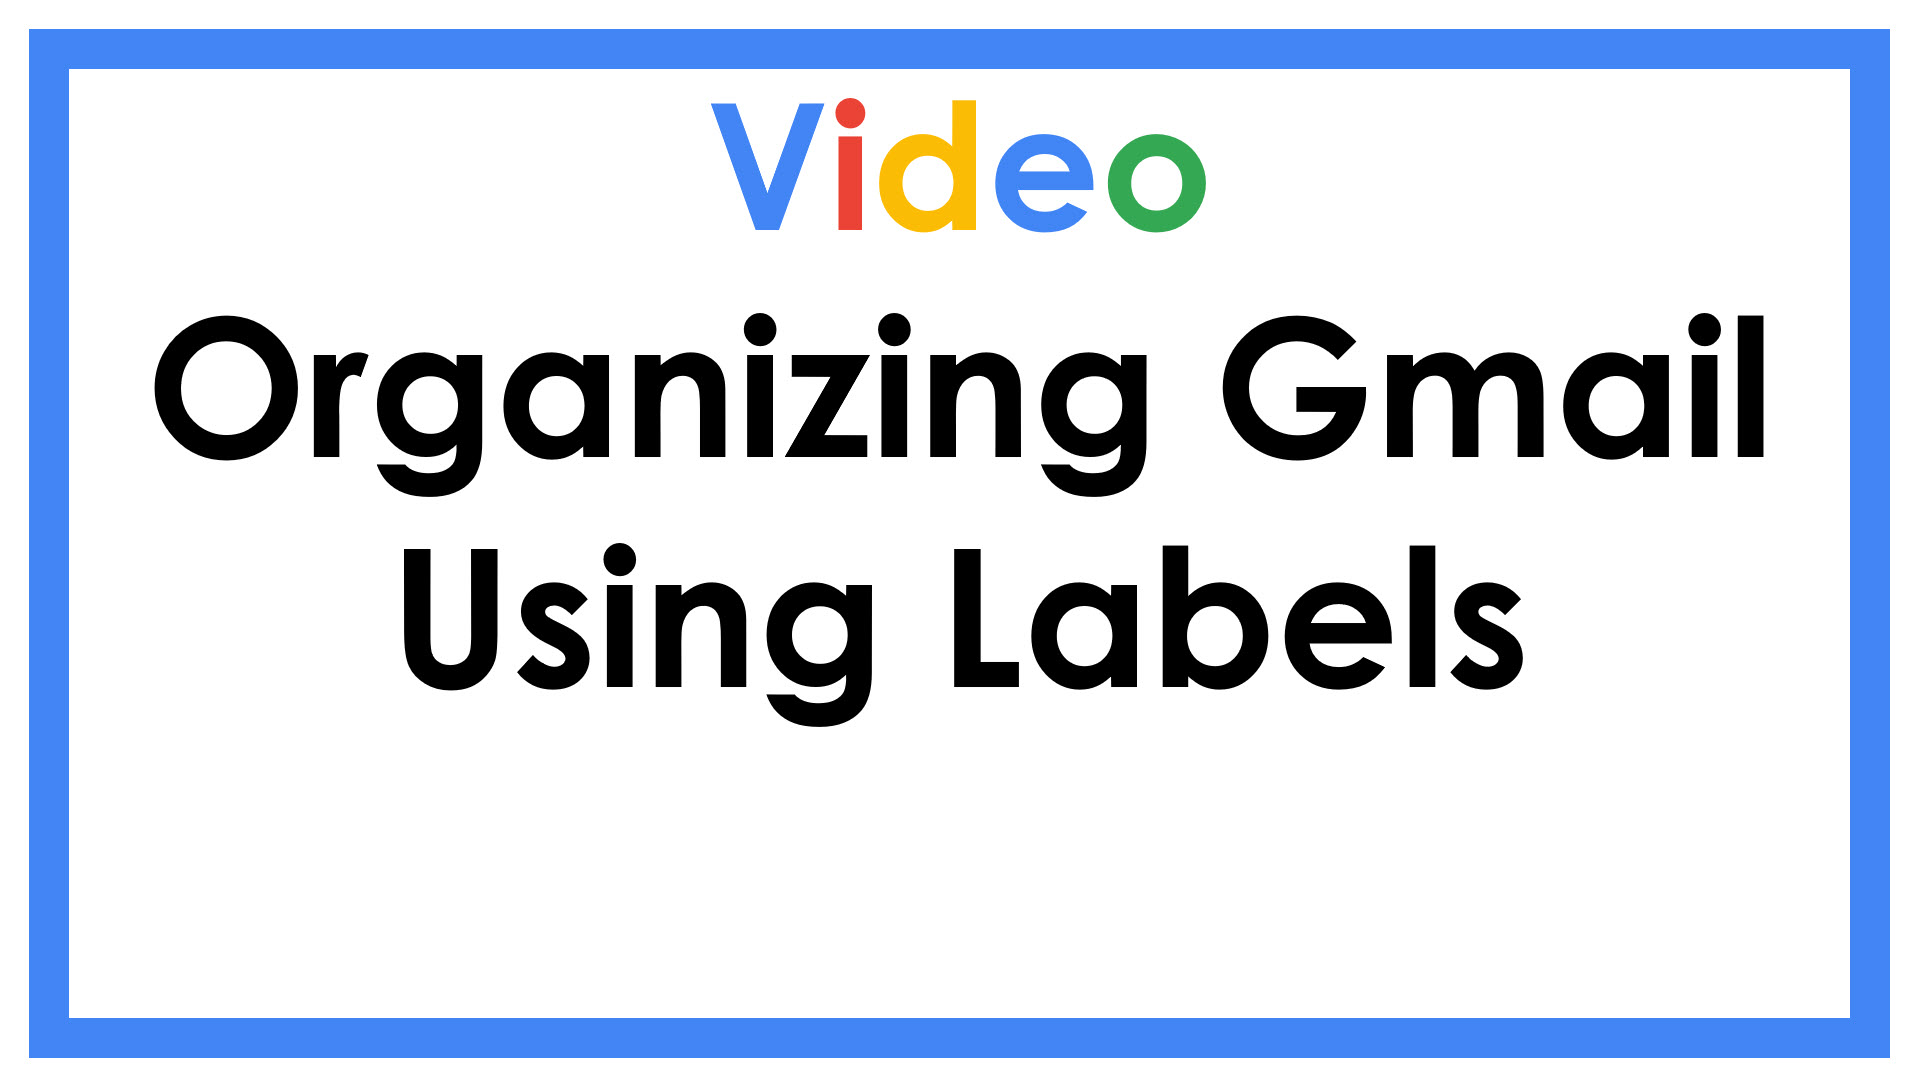 Organizing Gmail using Labels